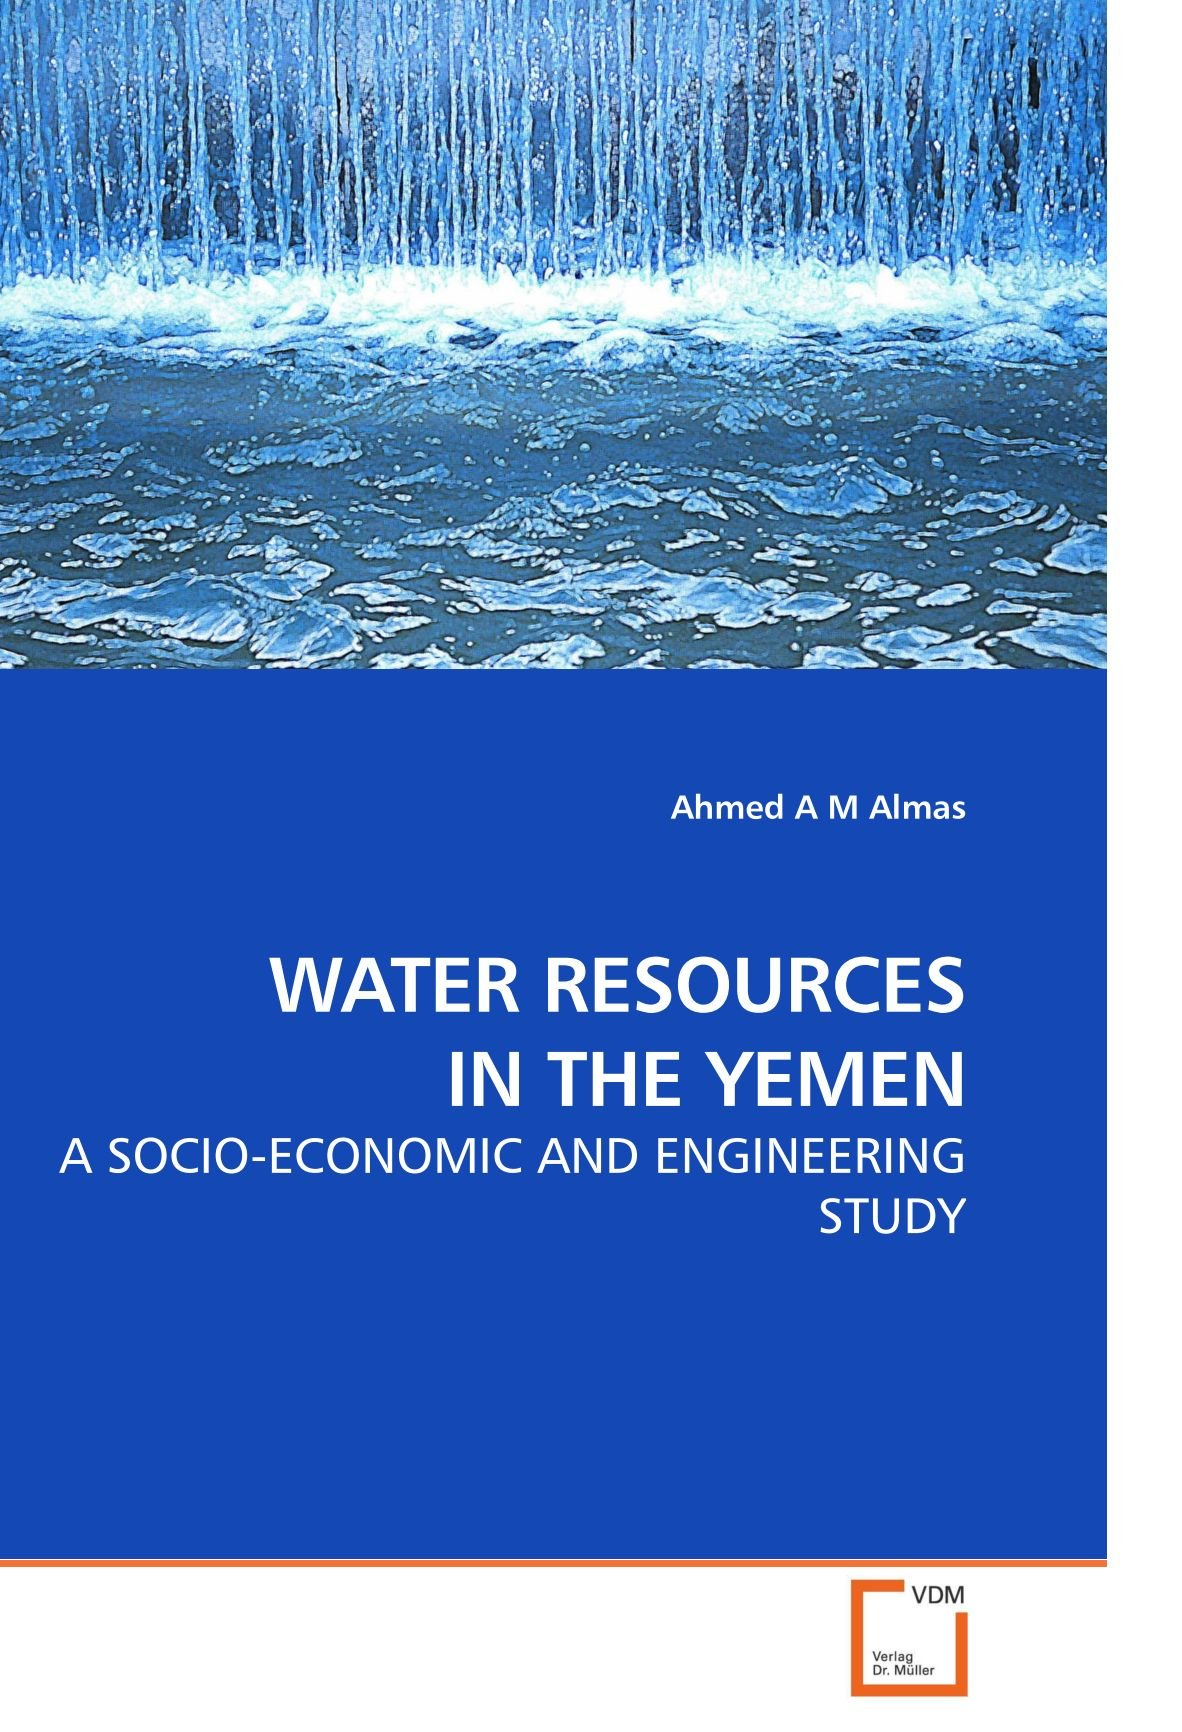 WATER RESOURCES IN THE YEMEN: A SOCIO-ECONOMIC AND ENGINEERING STUDY PDF